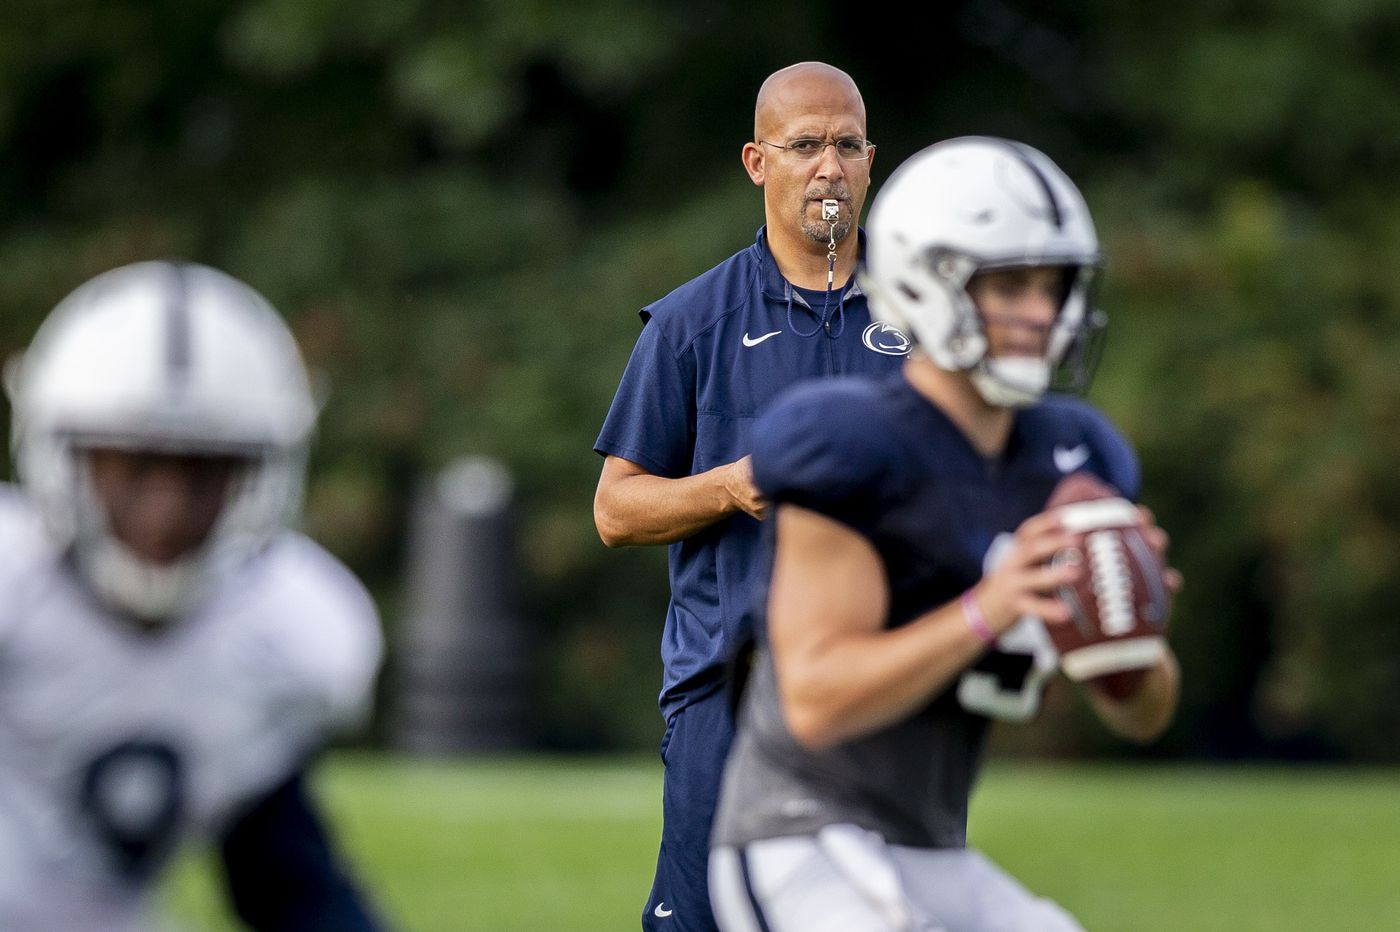 Penn State's James Franklin won't change approach for Friday night game vs. Illinois